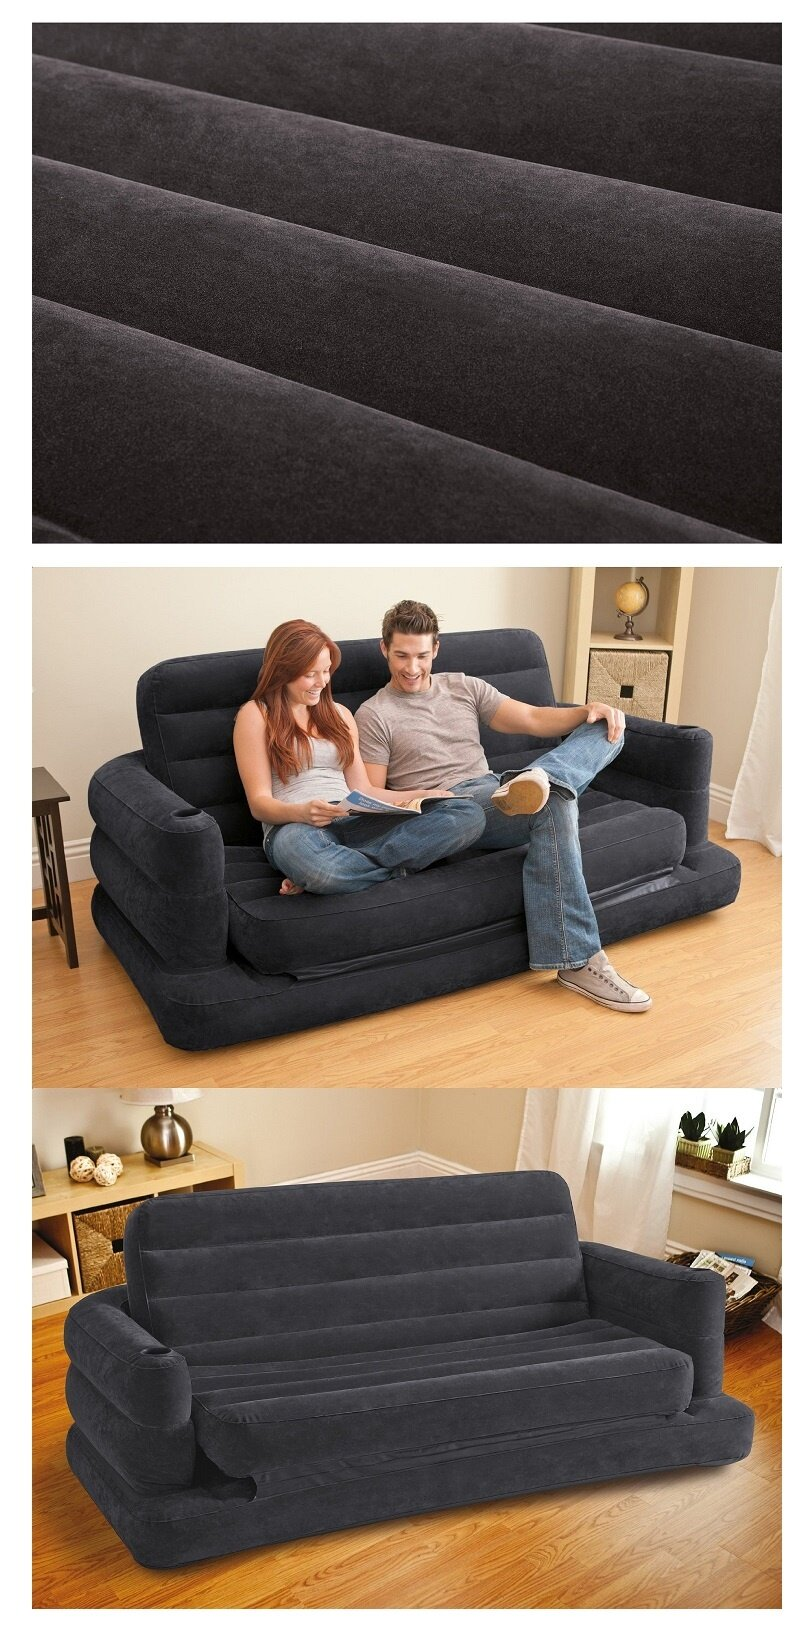 1 x Intex Inflatable Pull Out Sofa Bed